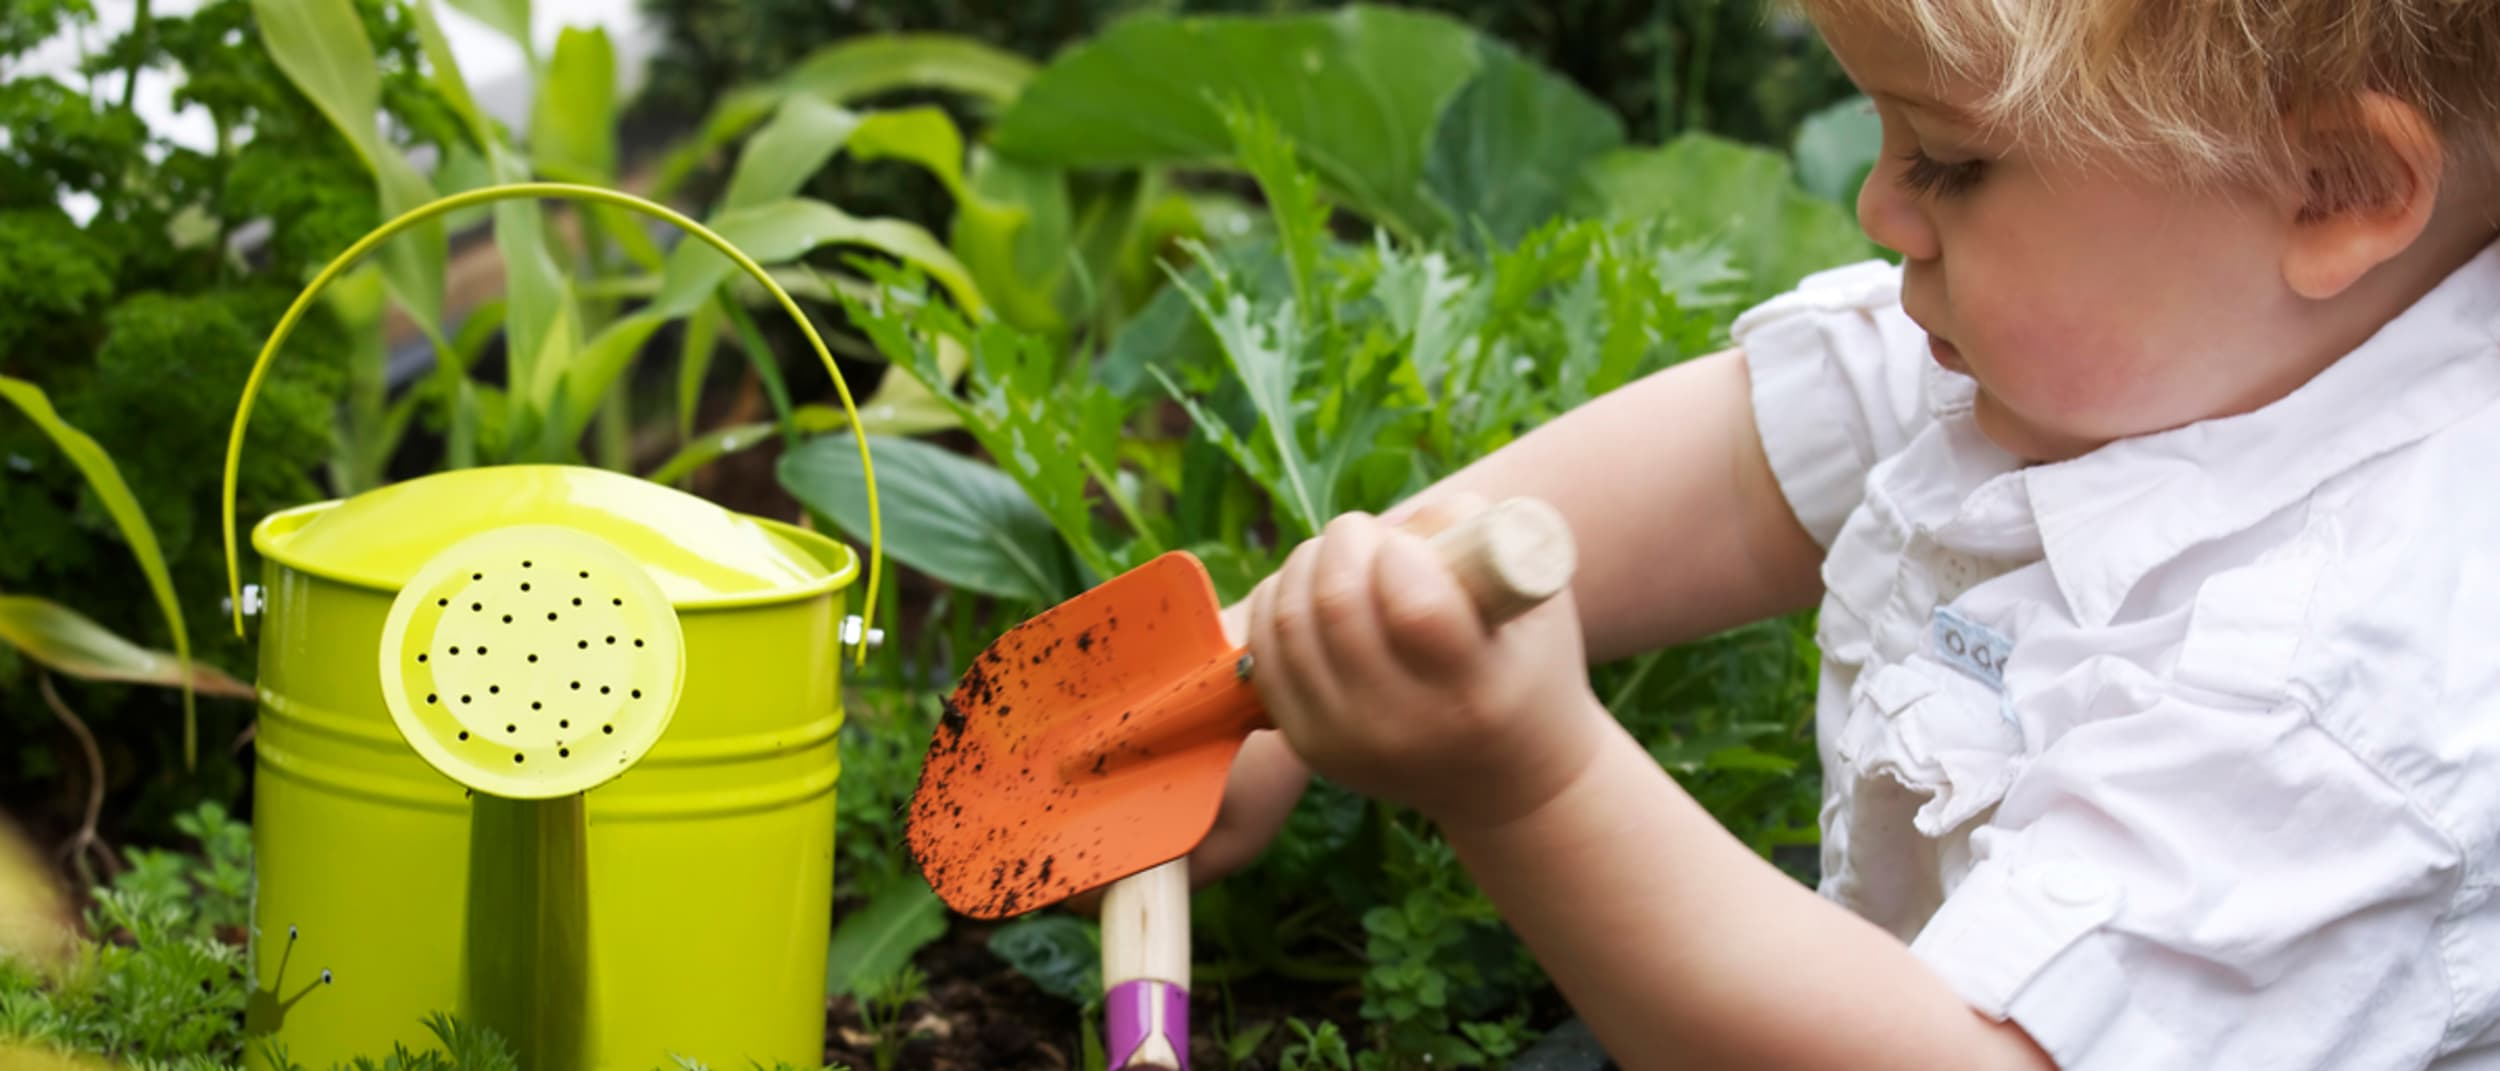 Kidstuff: fun outdoor activity ideas for kids